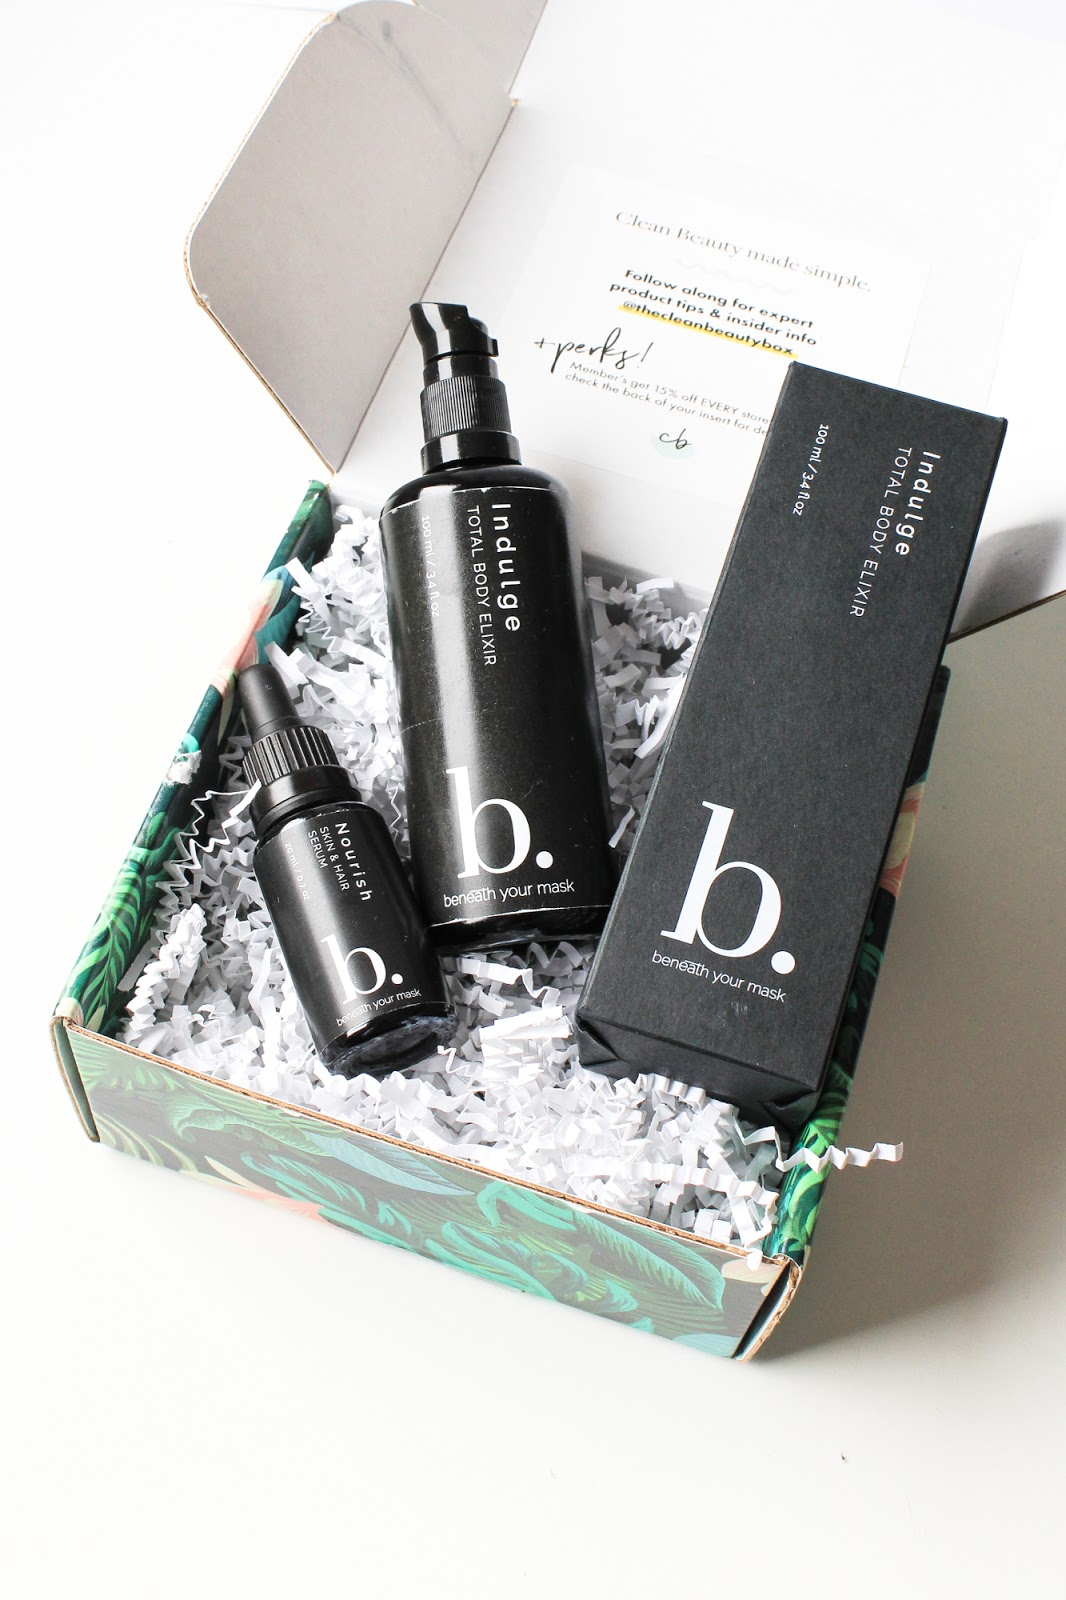 March Clean Beauty Box Indulge Beneath Your Mask Indulge Total Body Elixir, Nourish Skin + Hair Serum